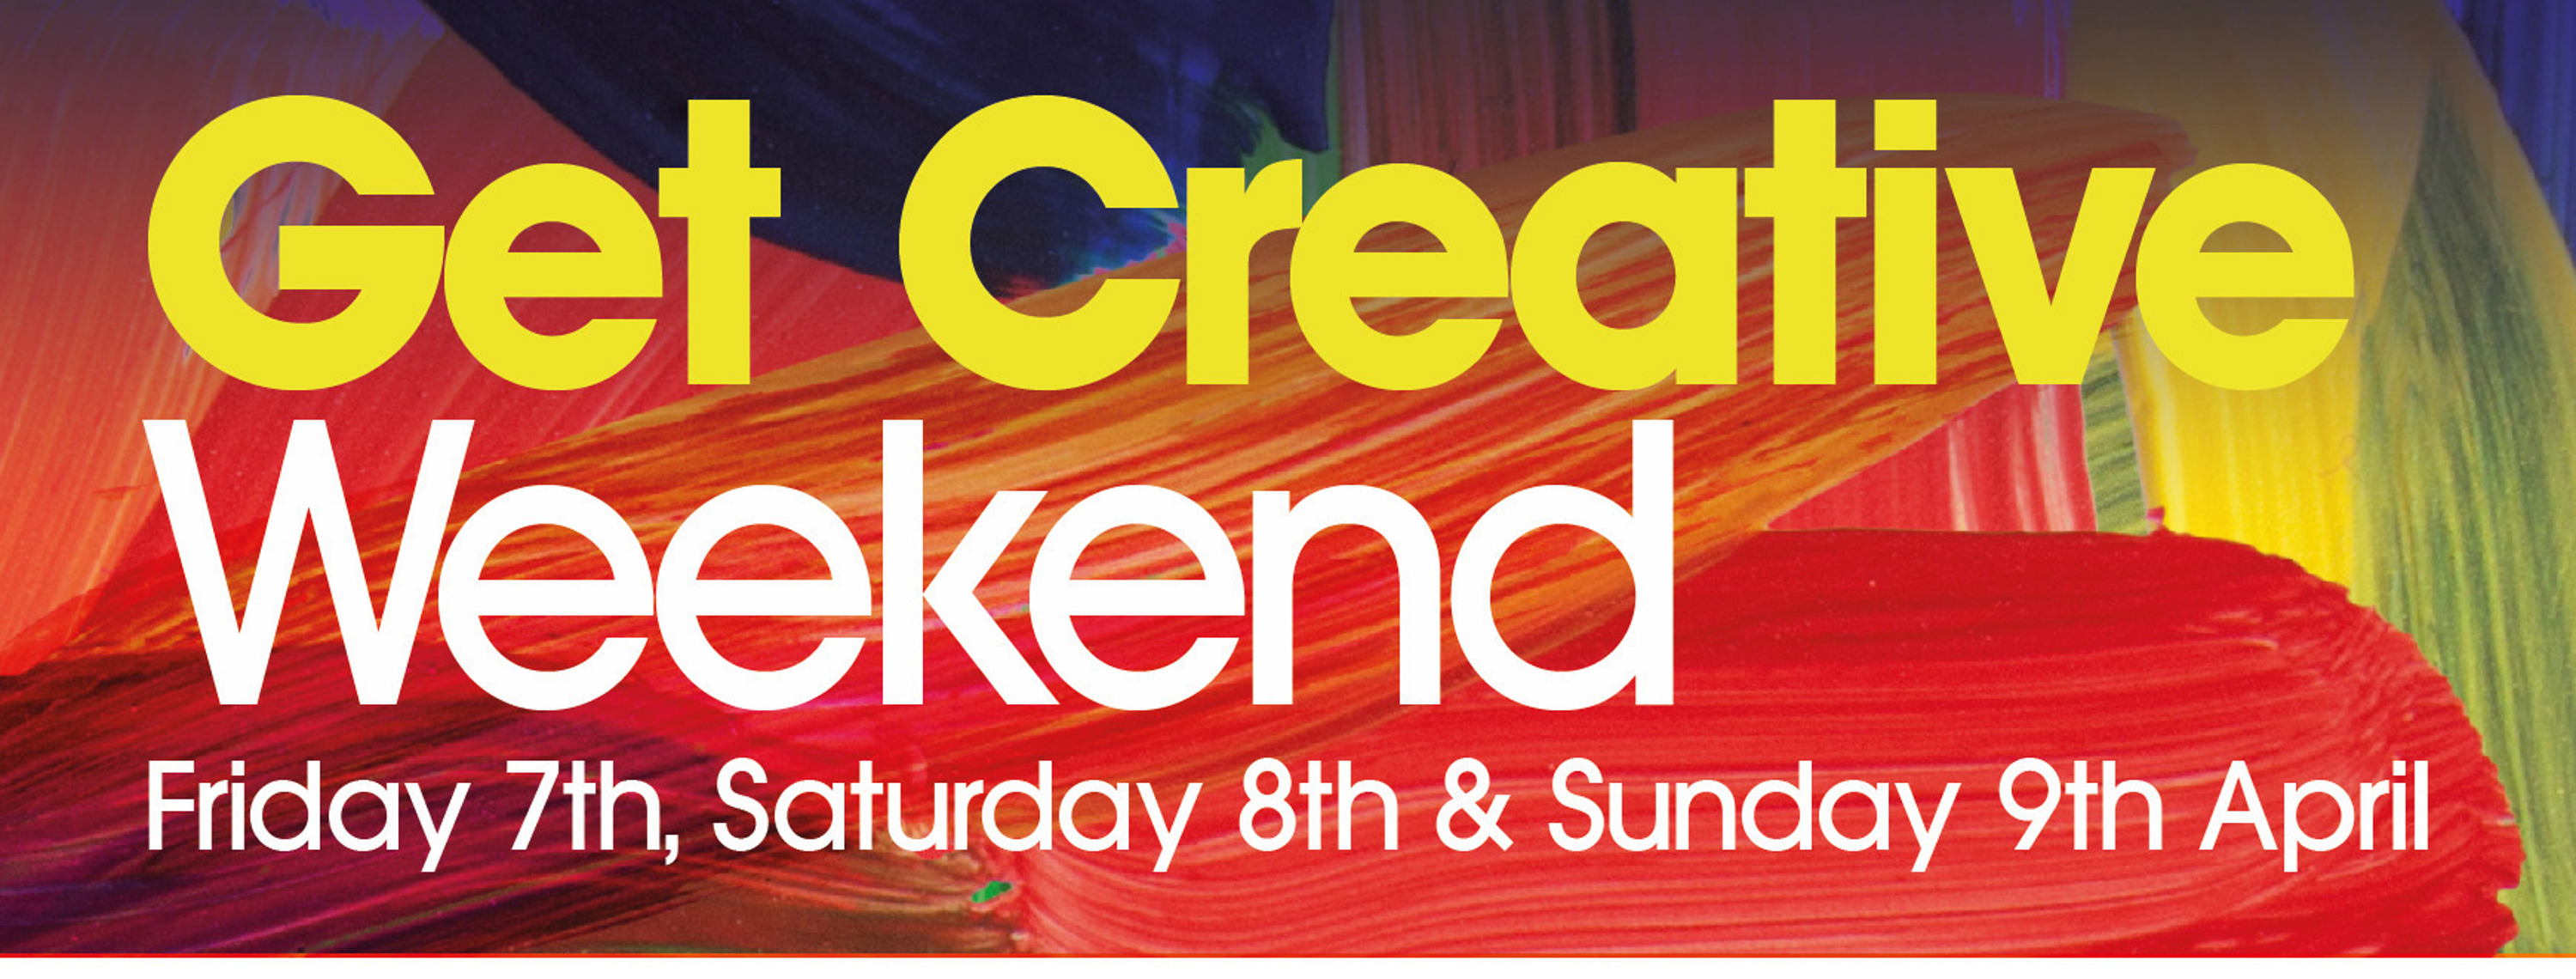 Get Creative Weekend 2017